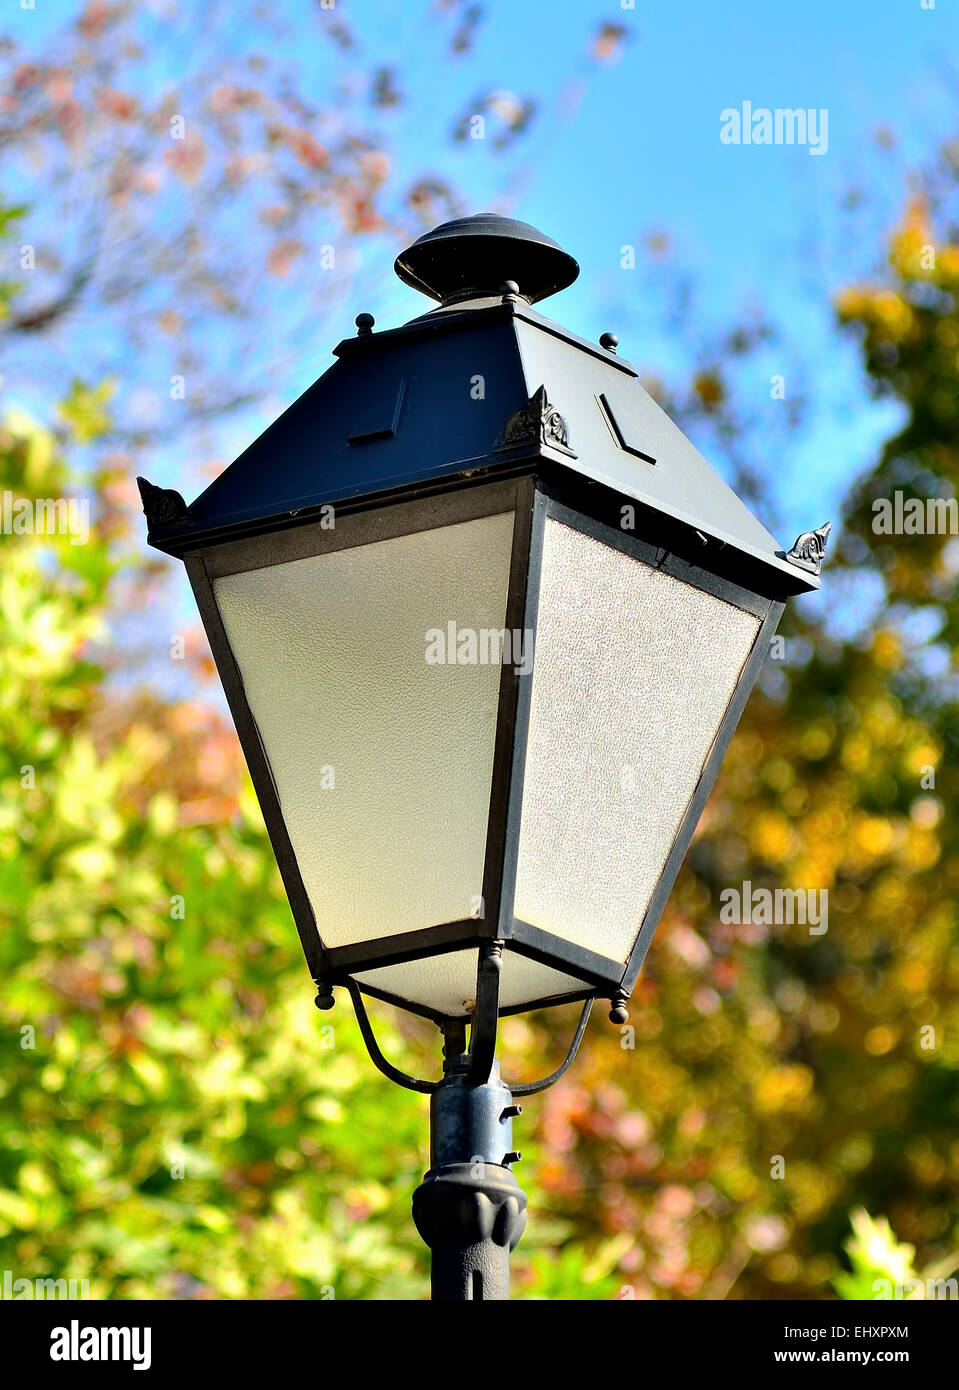 Old street lamp on a nature background - Stock Image